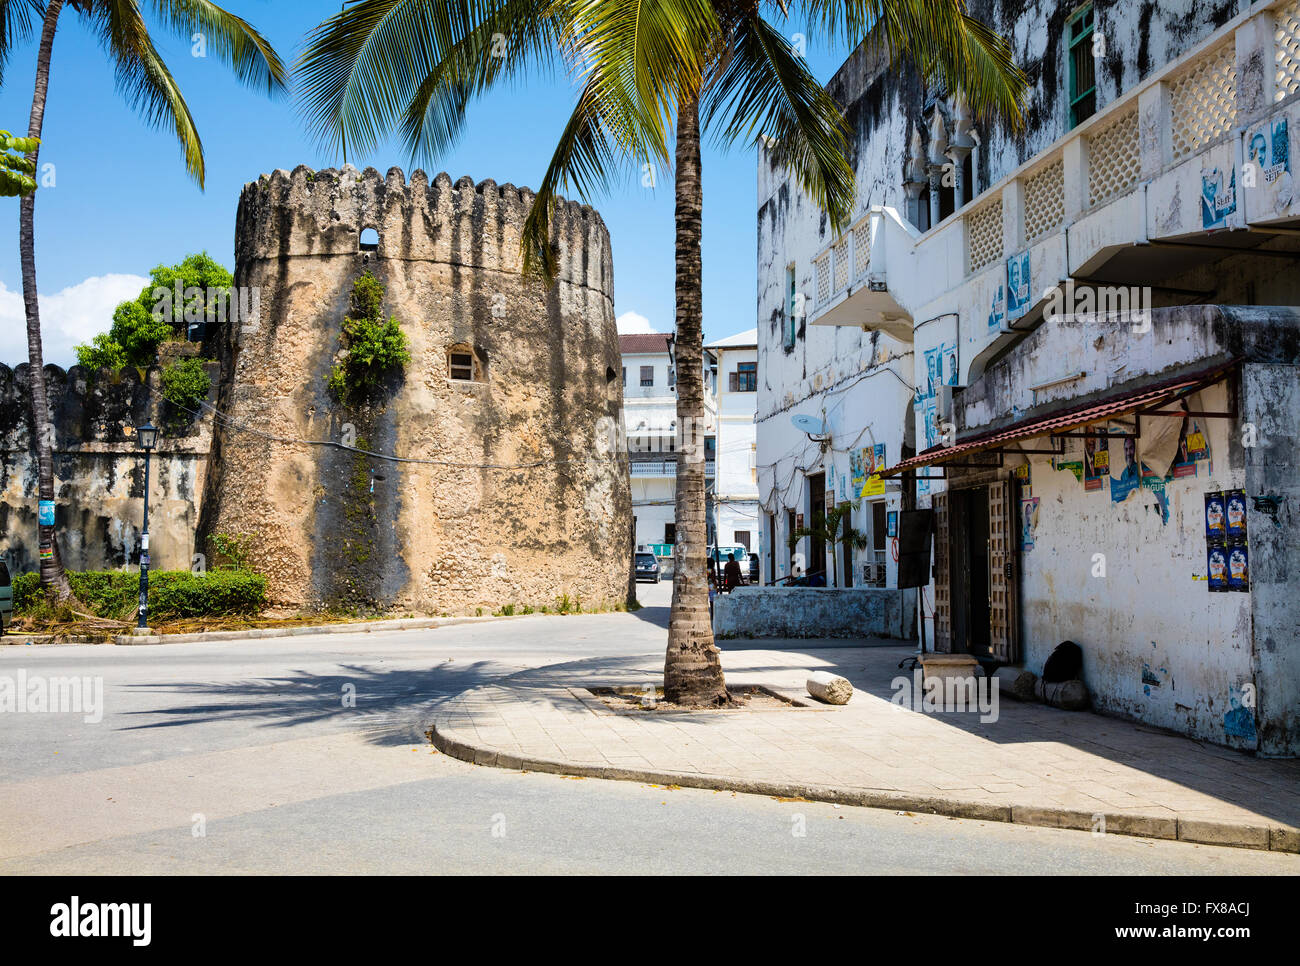 Corner tower in the walls of the Old Fort or Ngome Kongwe in Stone Town Zanzibar - Stock Image